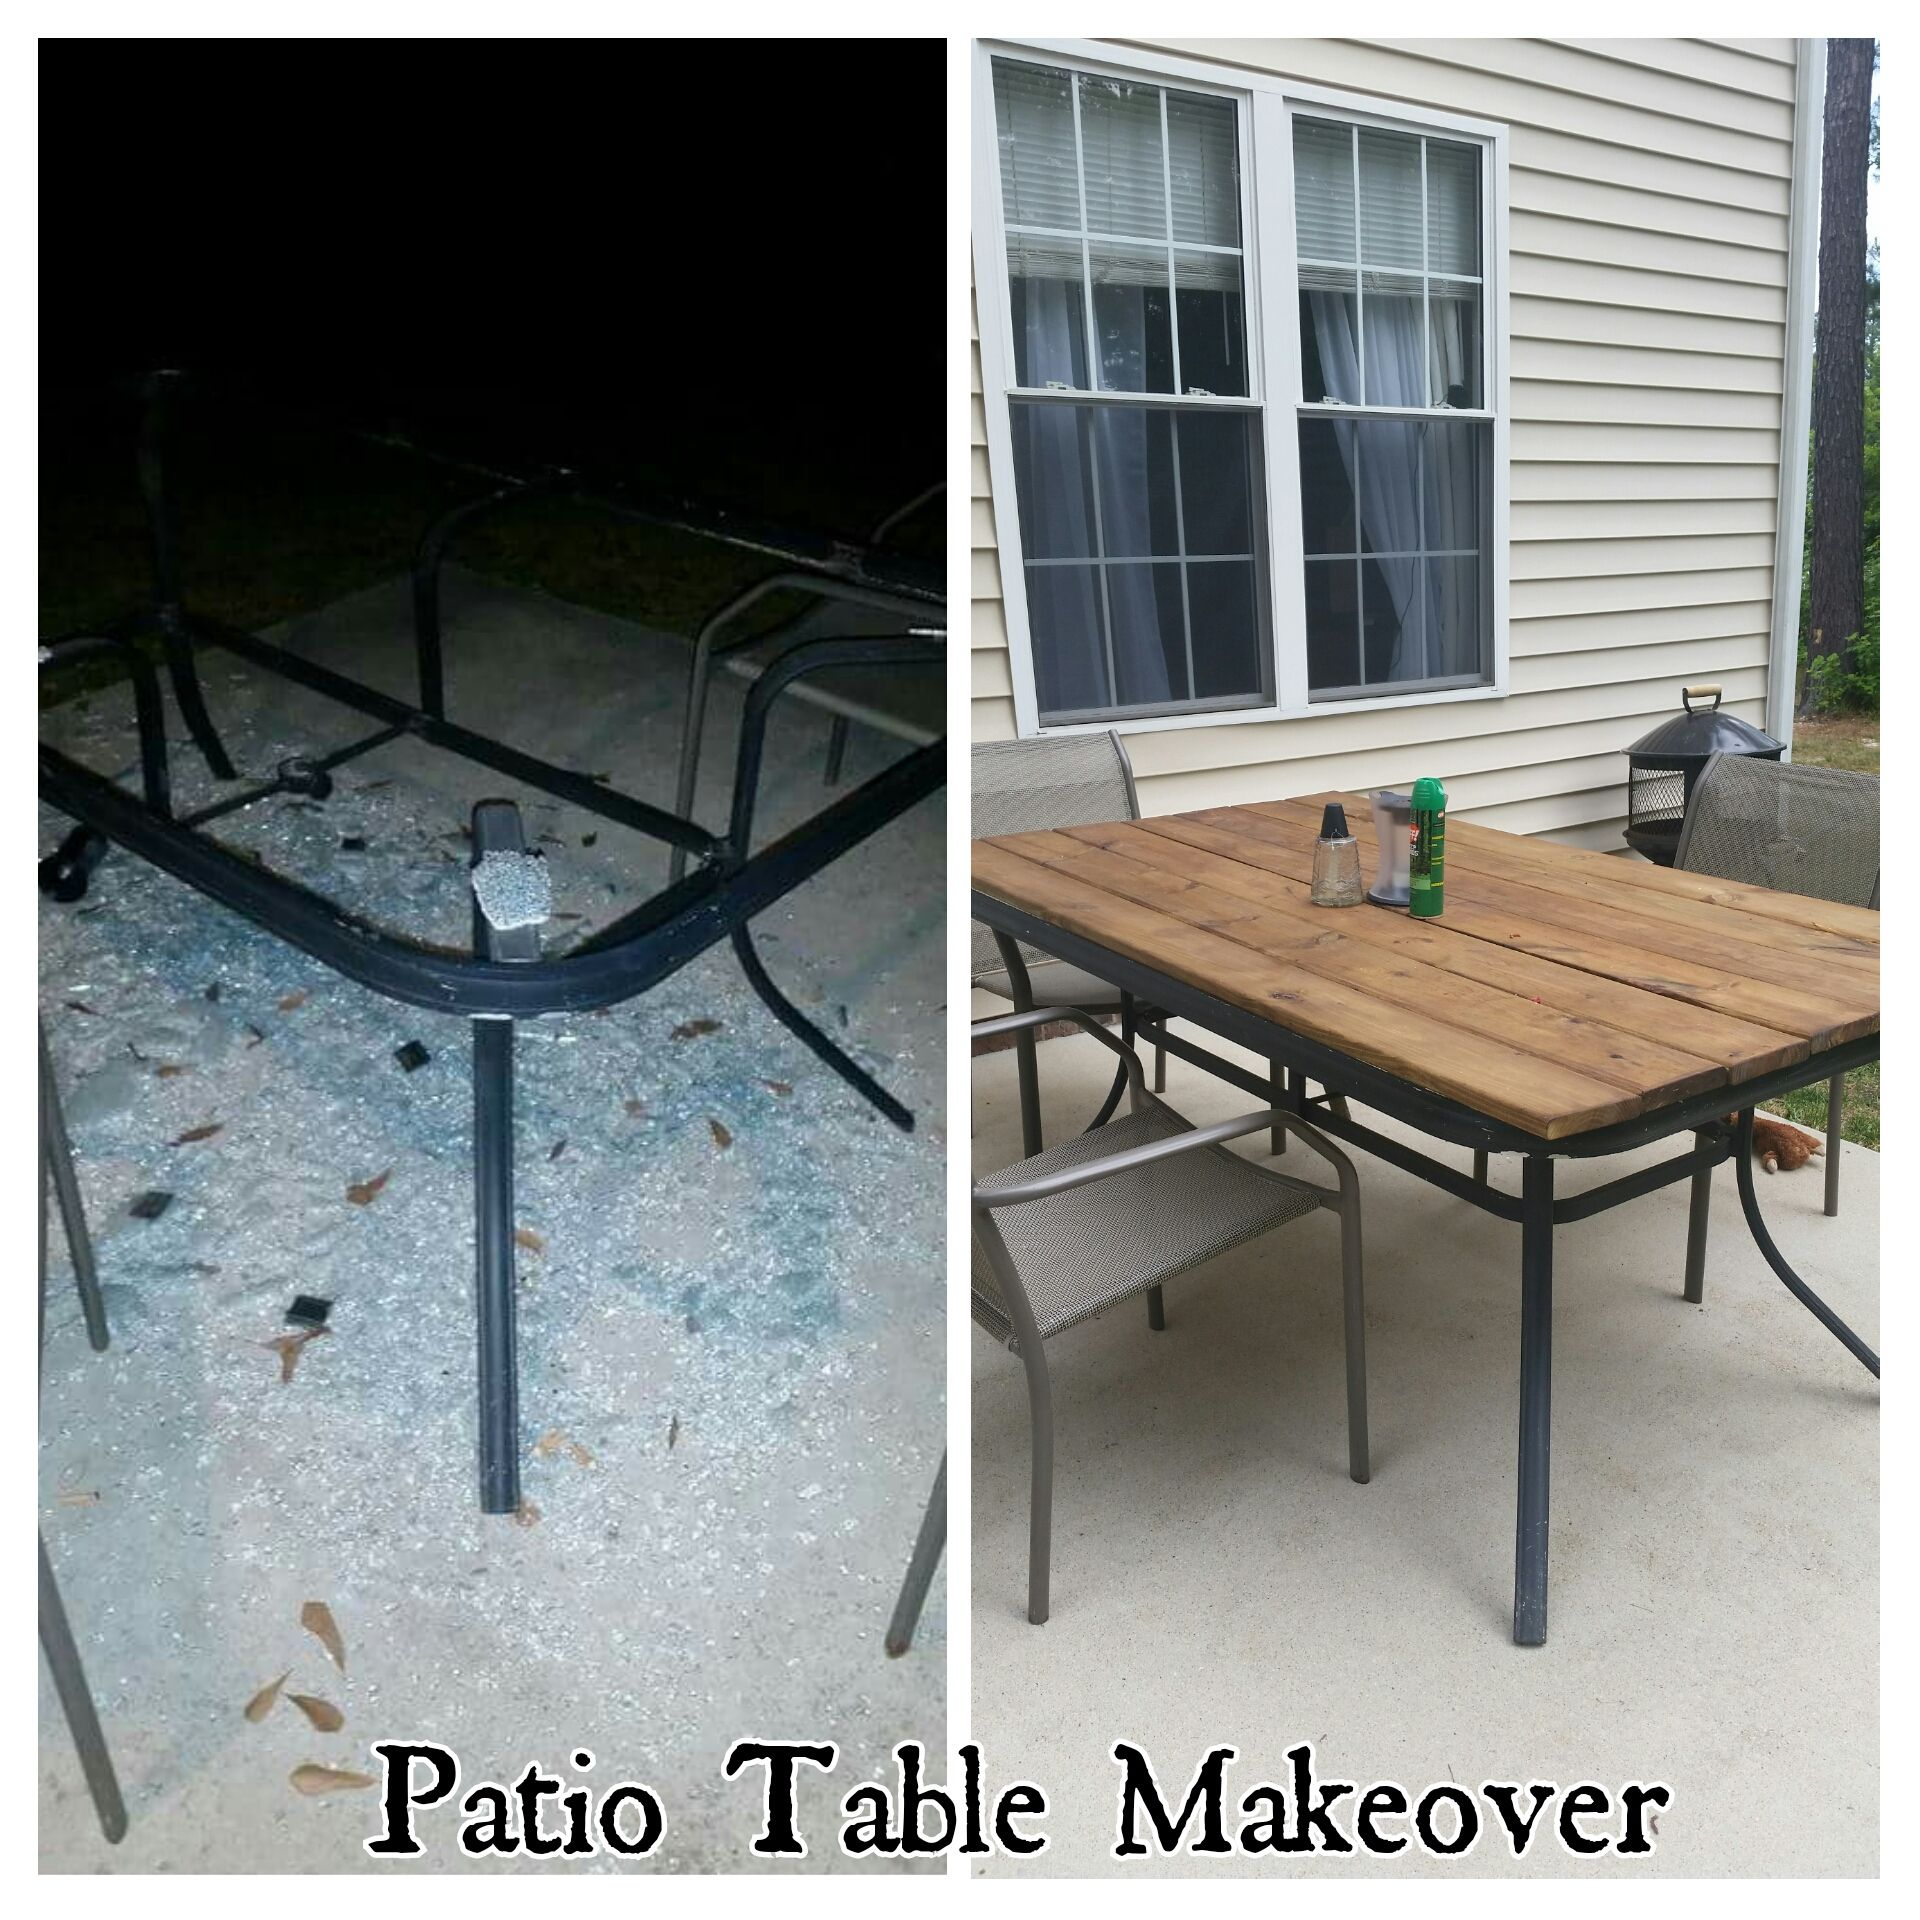 High Quality Patio Table Makeover, Shattered Glass, Redo